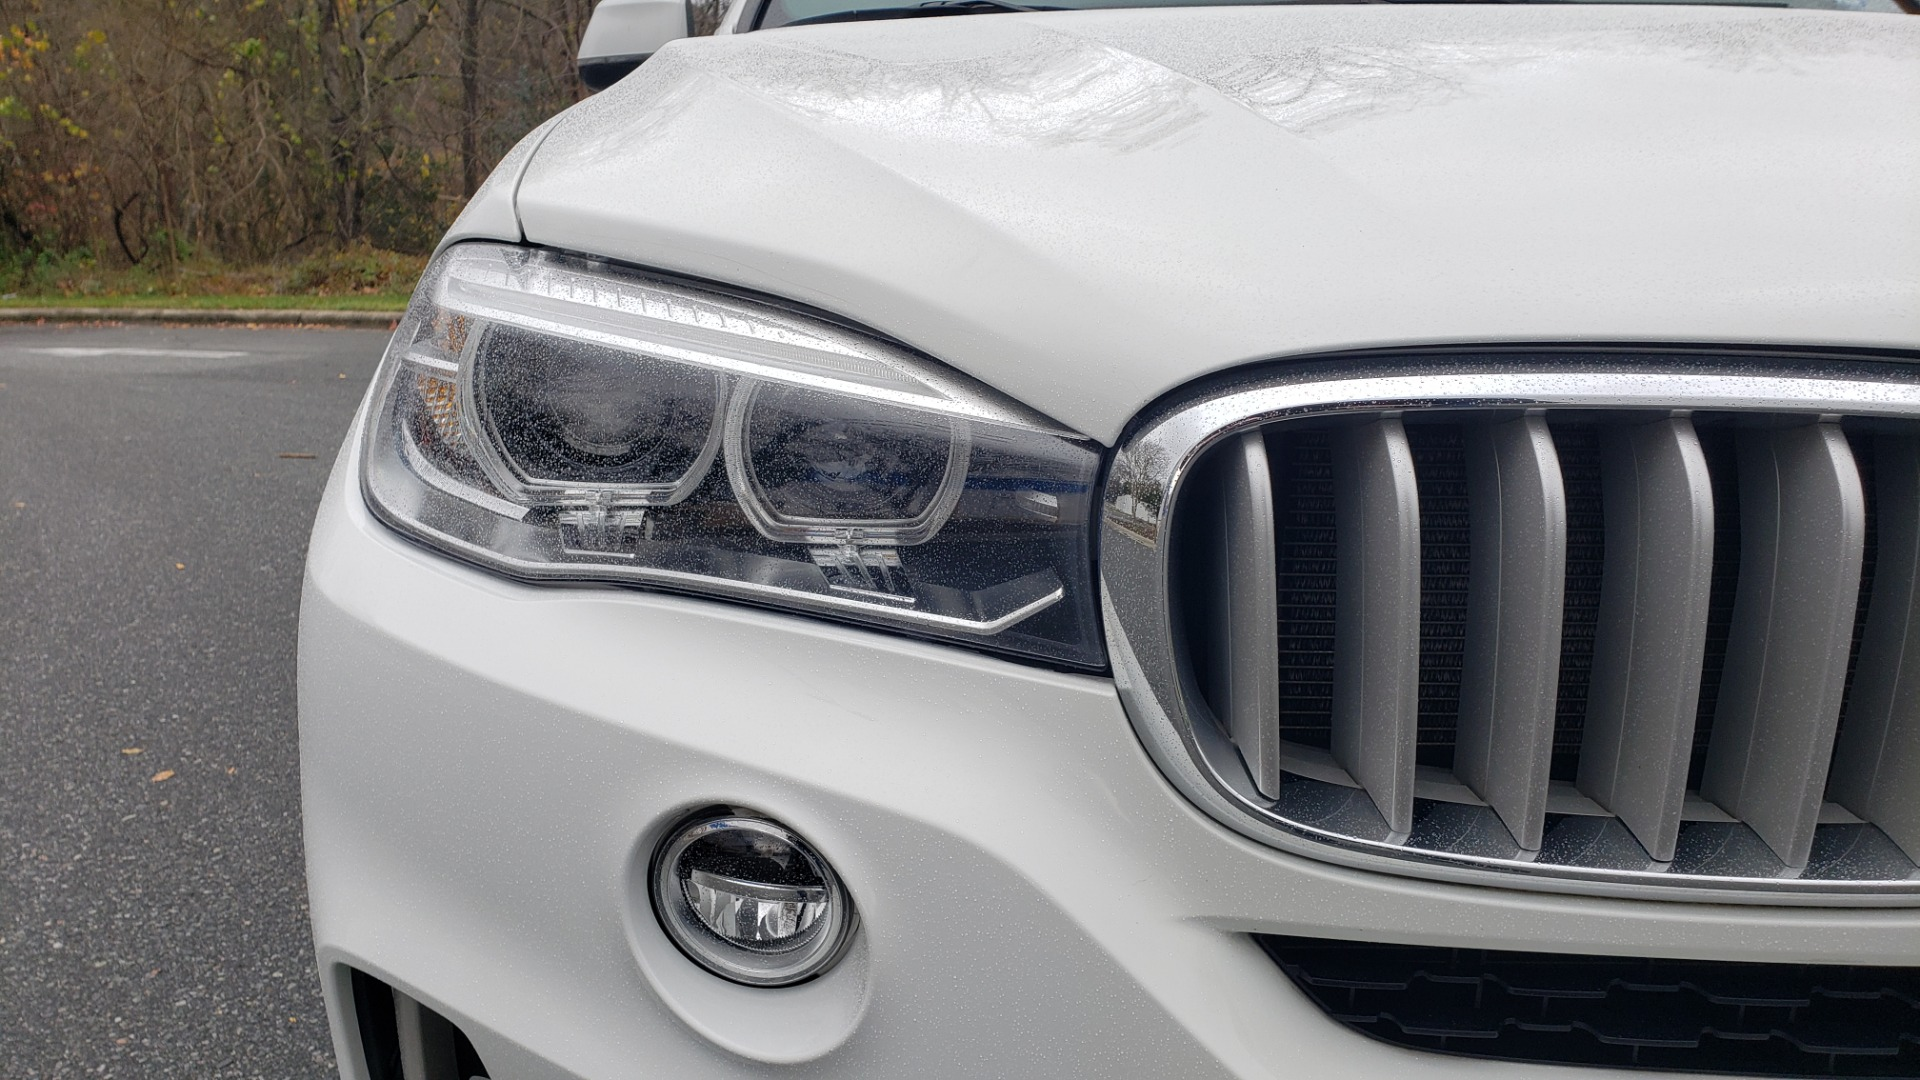 Used 2018 BMW X5 XDRIVE35I / AWD / NAV / HTD STS / SUNROOF / REARVIEW for sale Sold at Formula Imports in Charlotte NC 28227 20